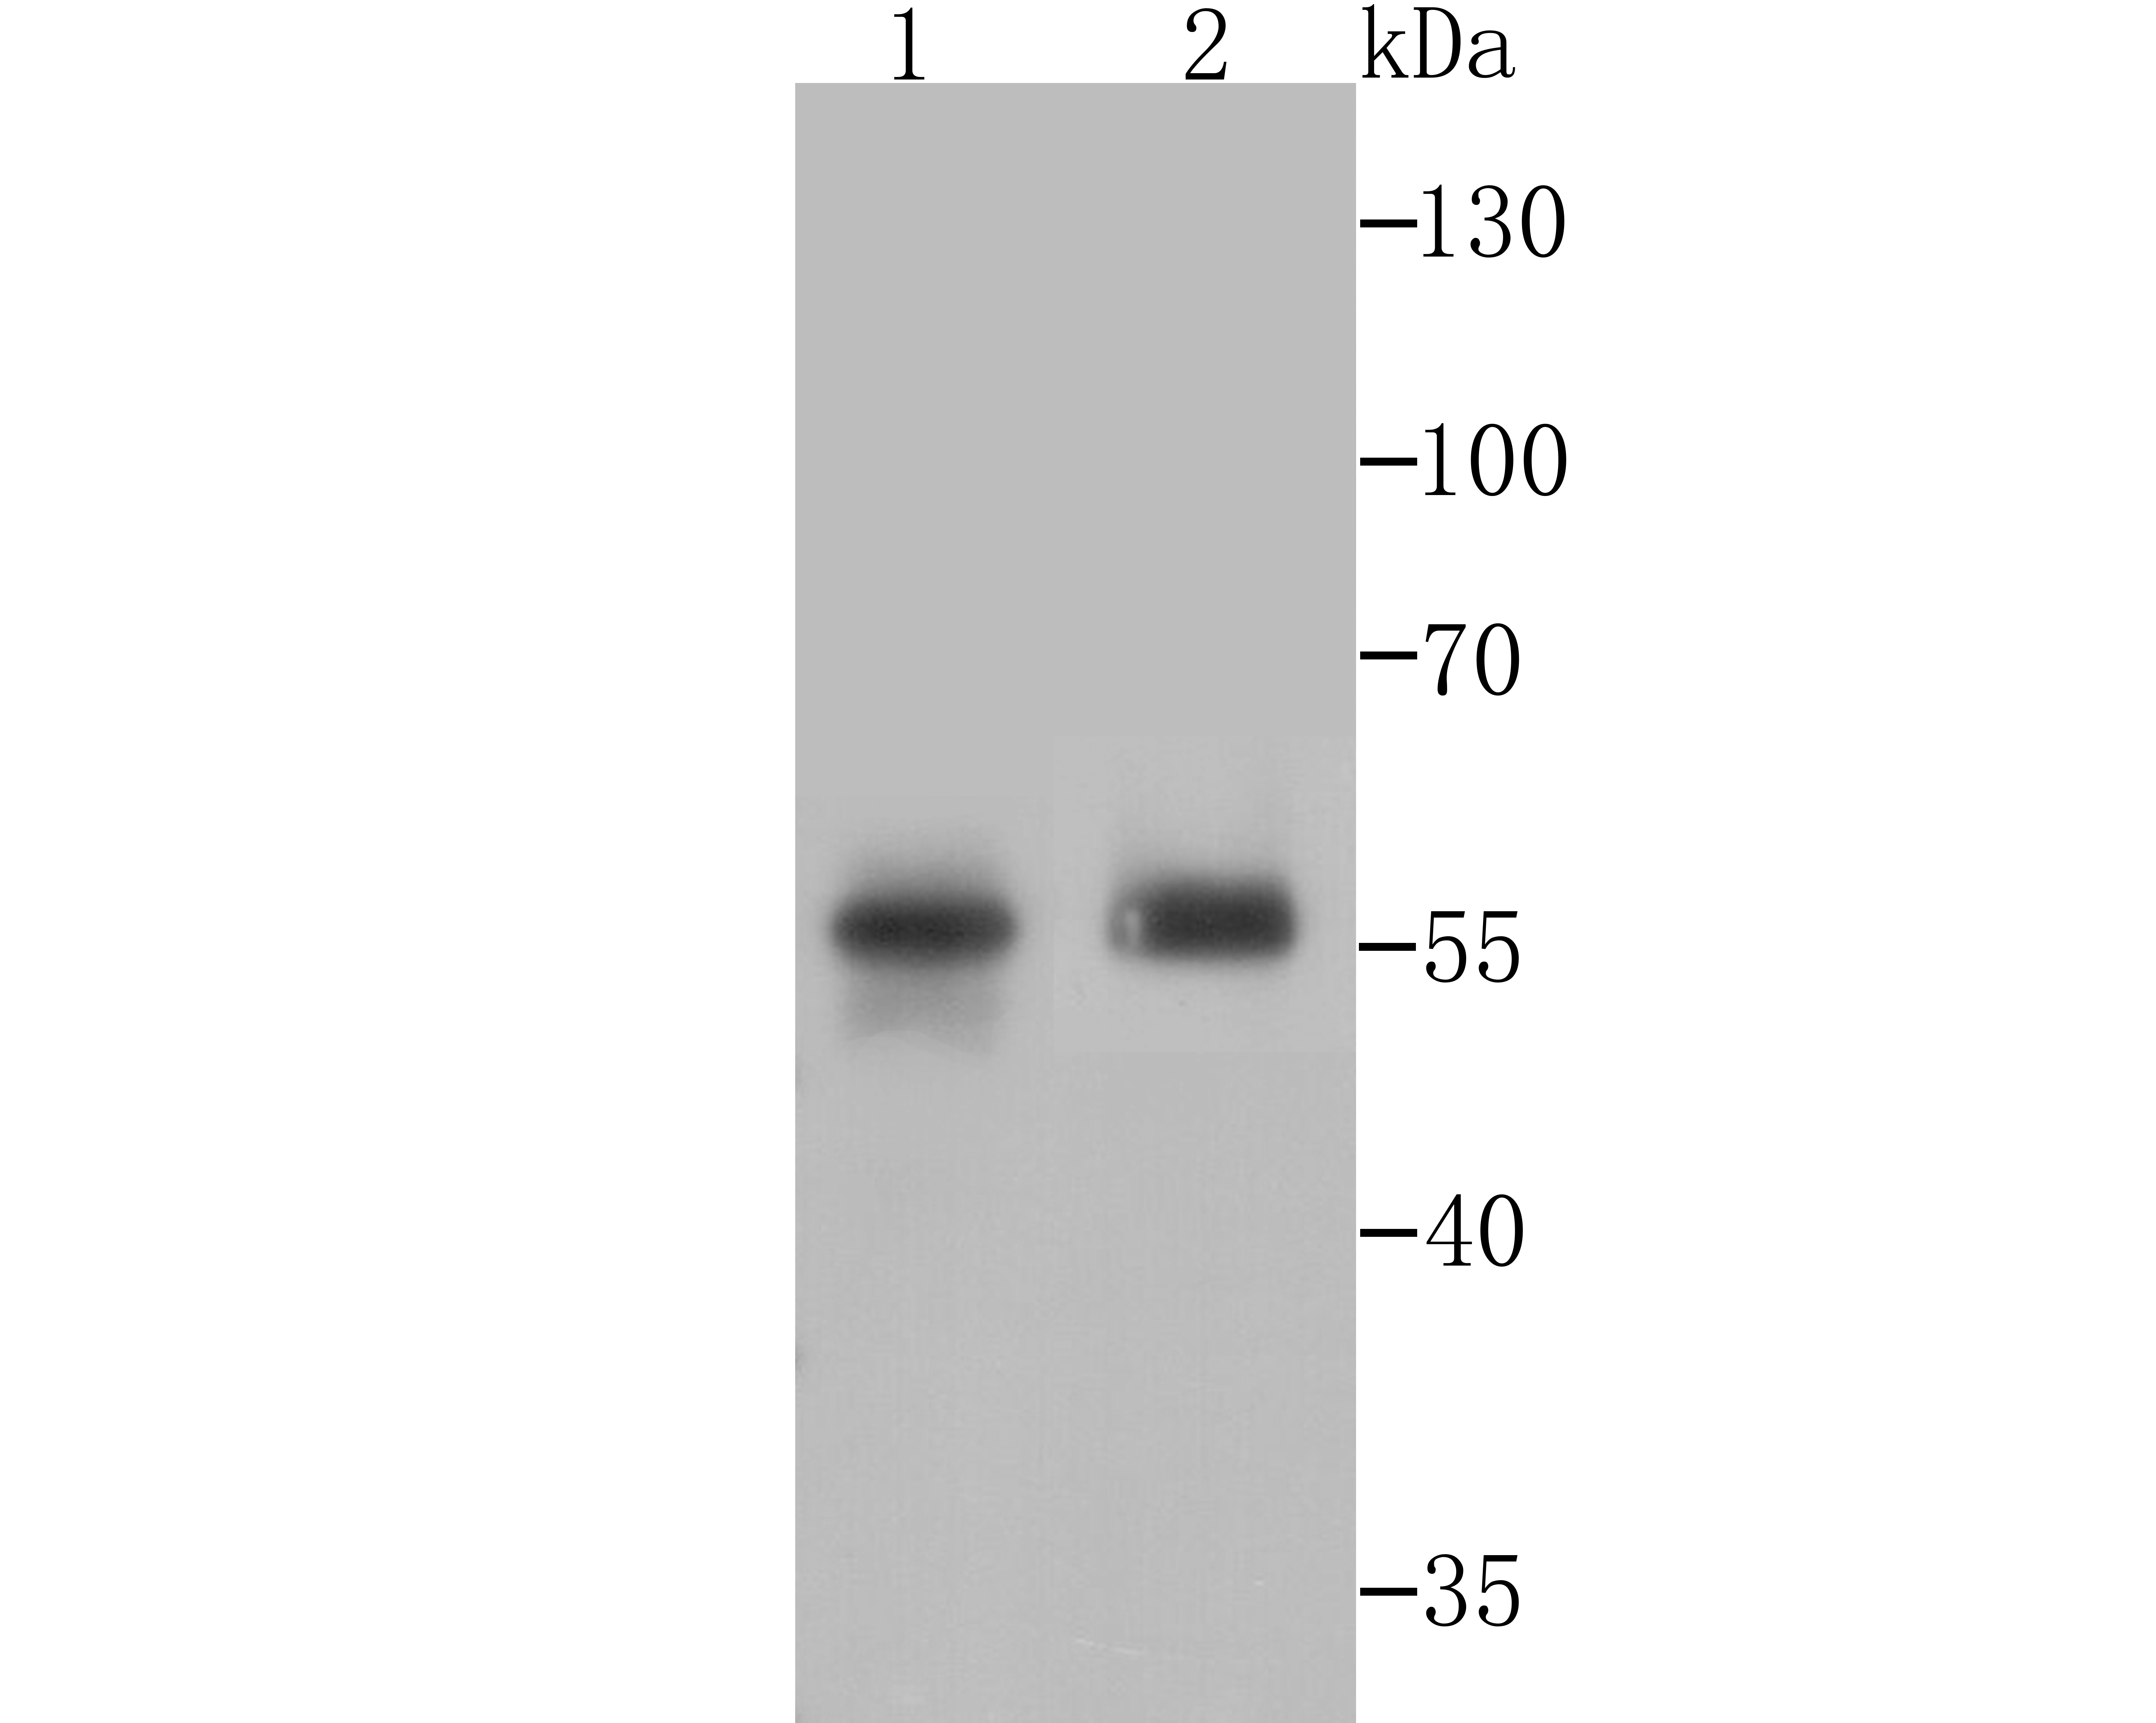 Western blot analysis of PTP1B on mouse prostate tissue and SiHa cell lysates using anti-PTP1B antibody at 1/500 dilution.